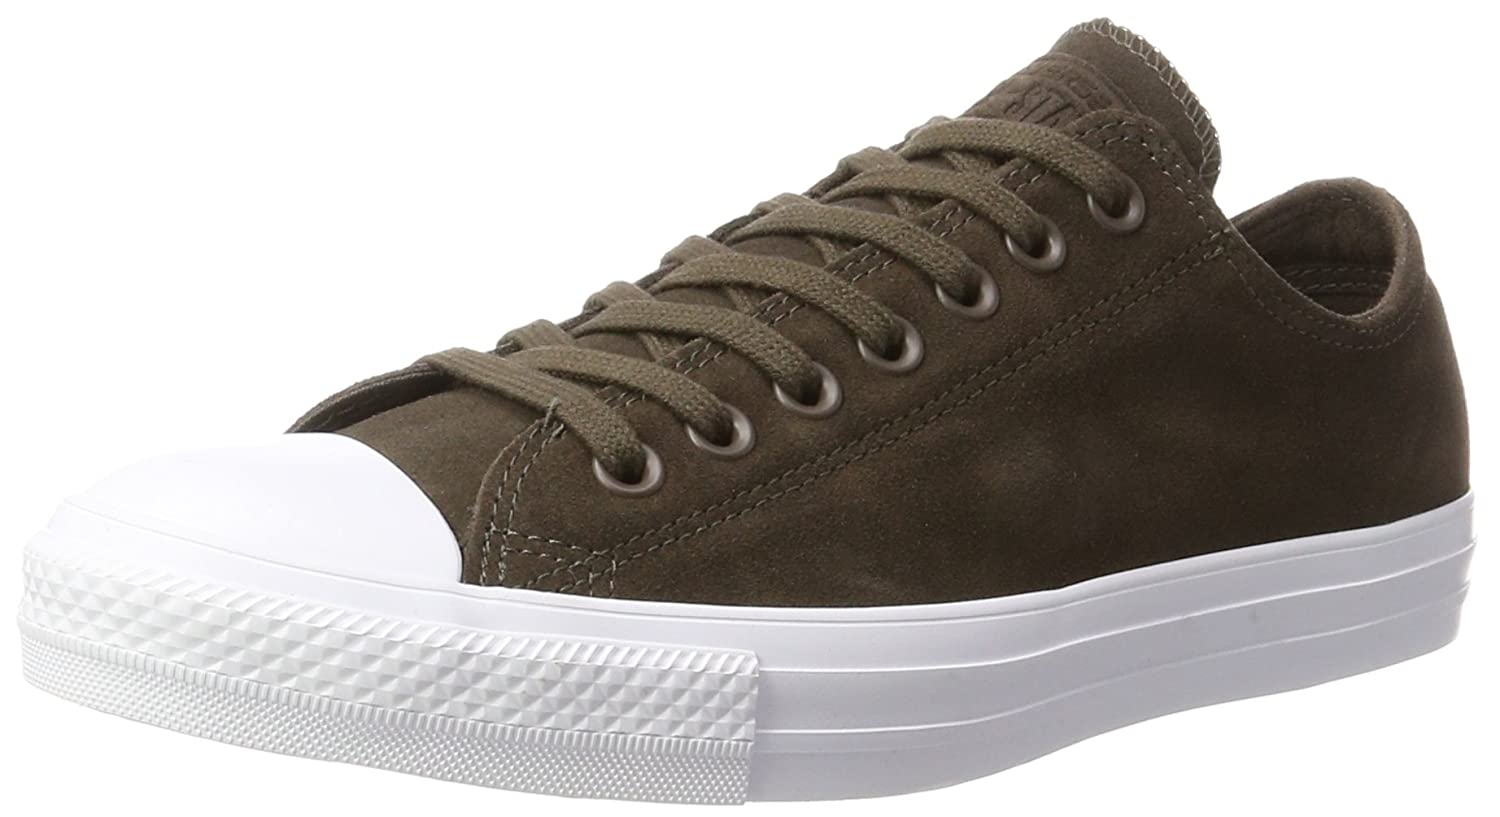 db705edfda4c04 Converse Ct All Star Ox Counter Climate Unisex Shoes Dark Chocolate 157598c  9 B(M) US Women   7 D(M)  Buy Online at Low Prices in India - Amazon.in